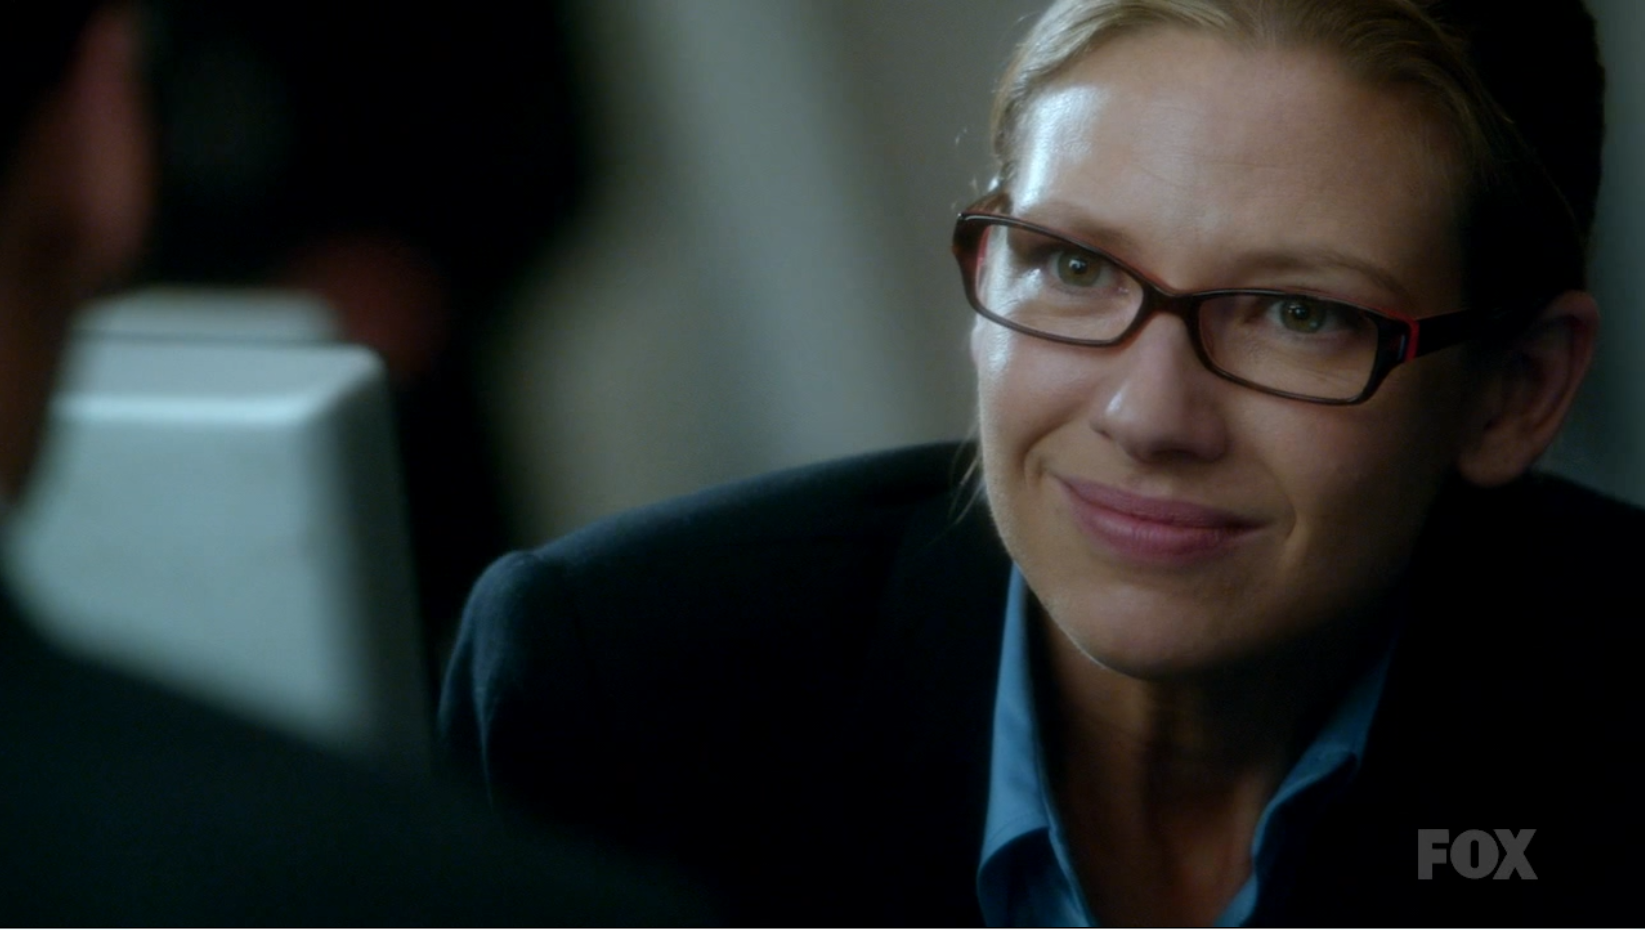 Olivia Dunham (Anna Torv) wearing glasses